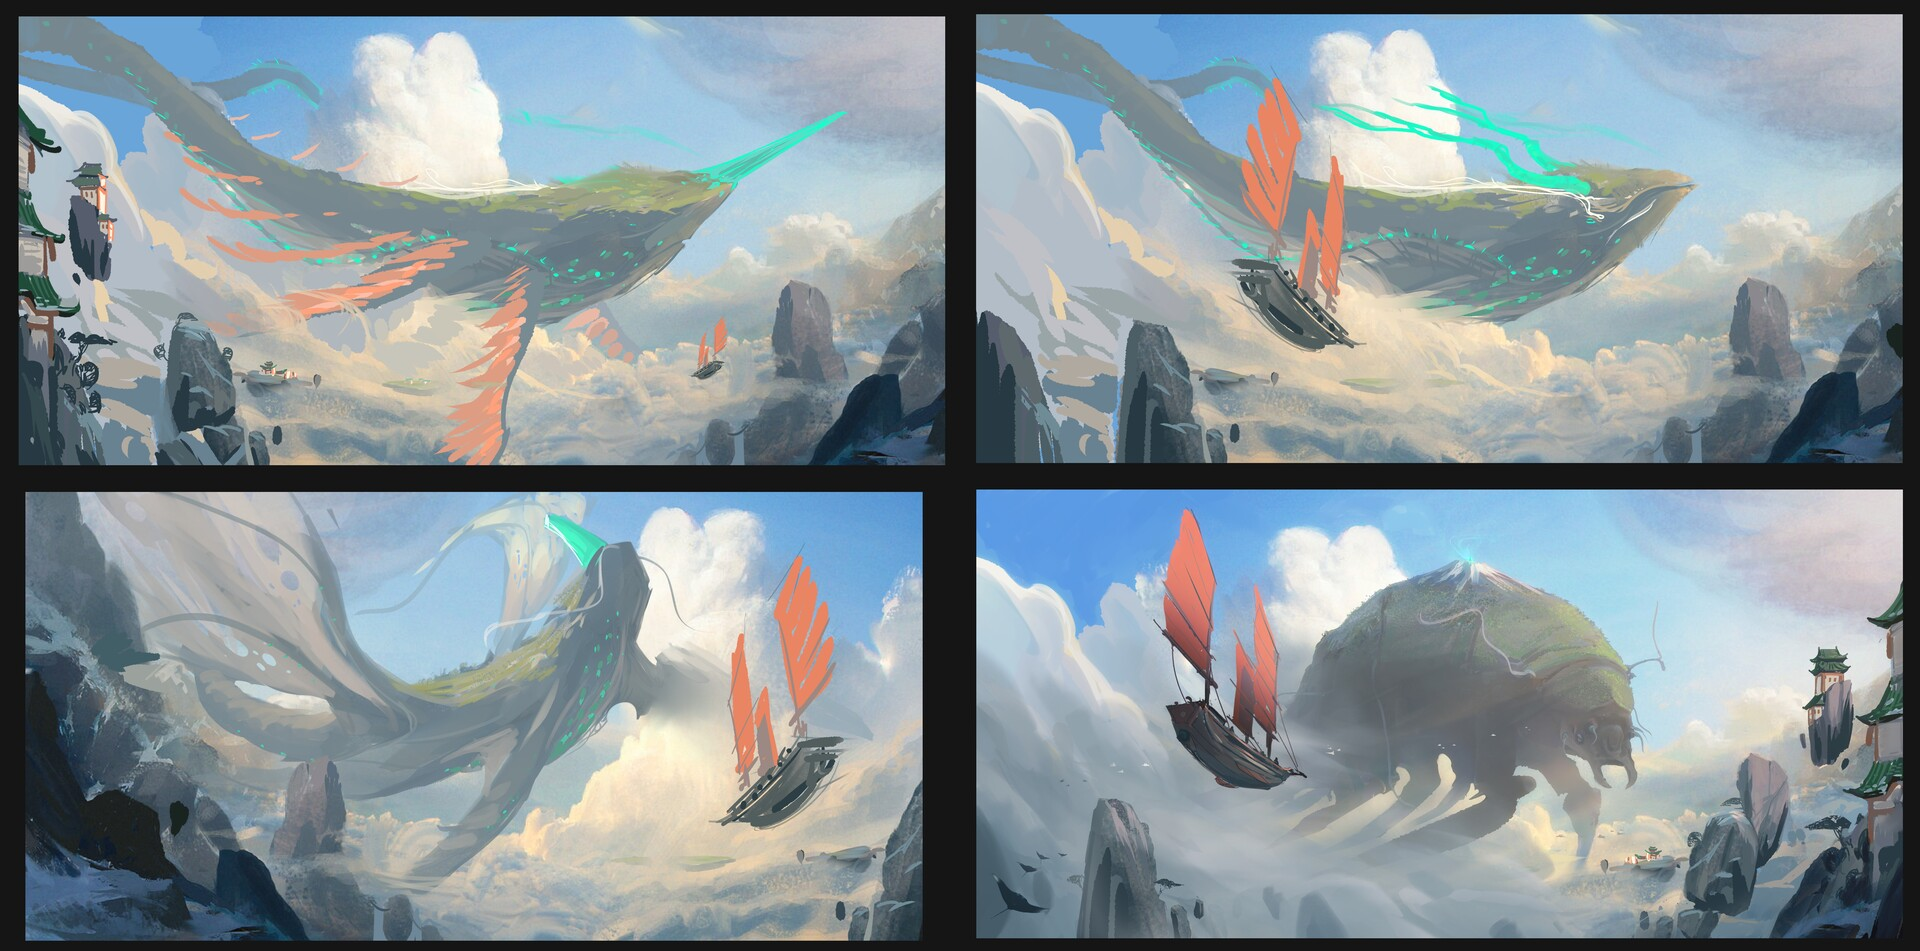 Alternative leviathan options. The jade color hint is important for the story, so I explored various options with jade horns, in the end the more subtle option was chosen, because it could pass as a mountain.